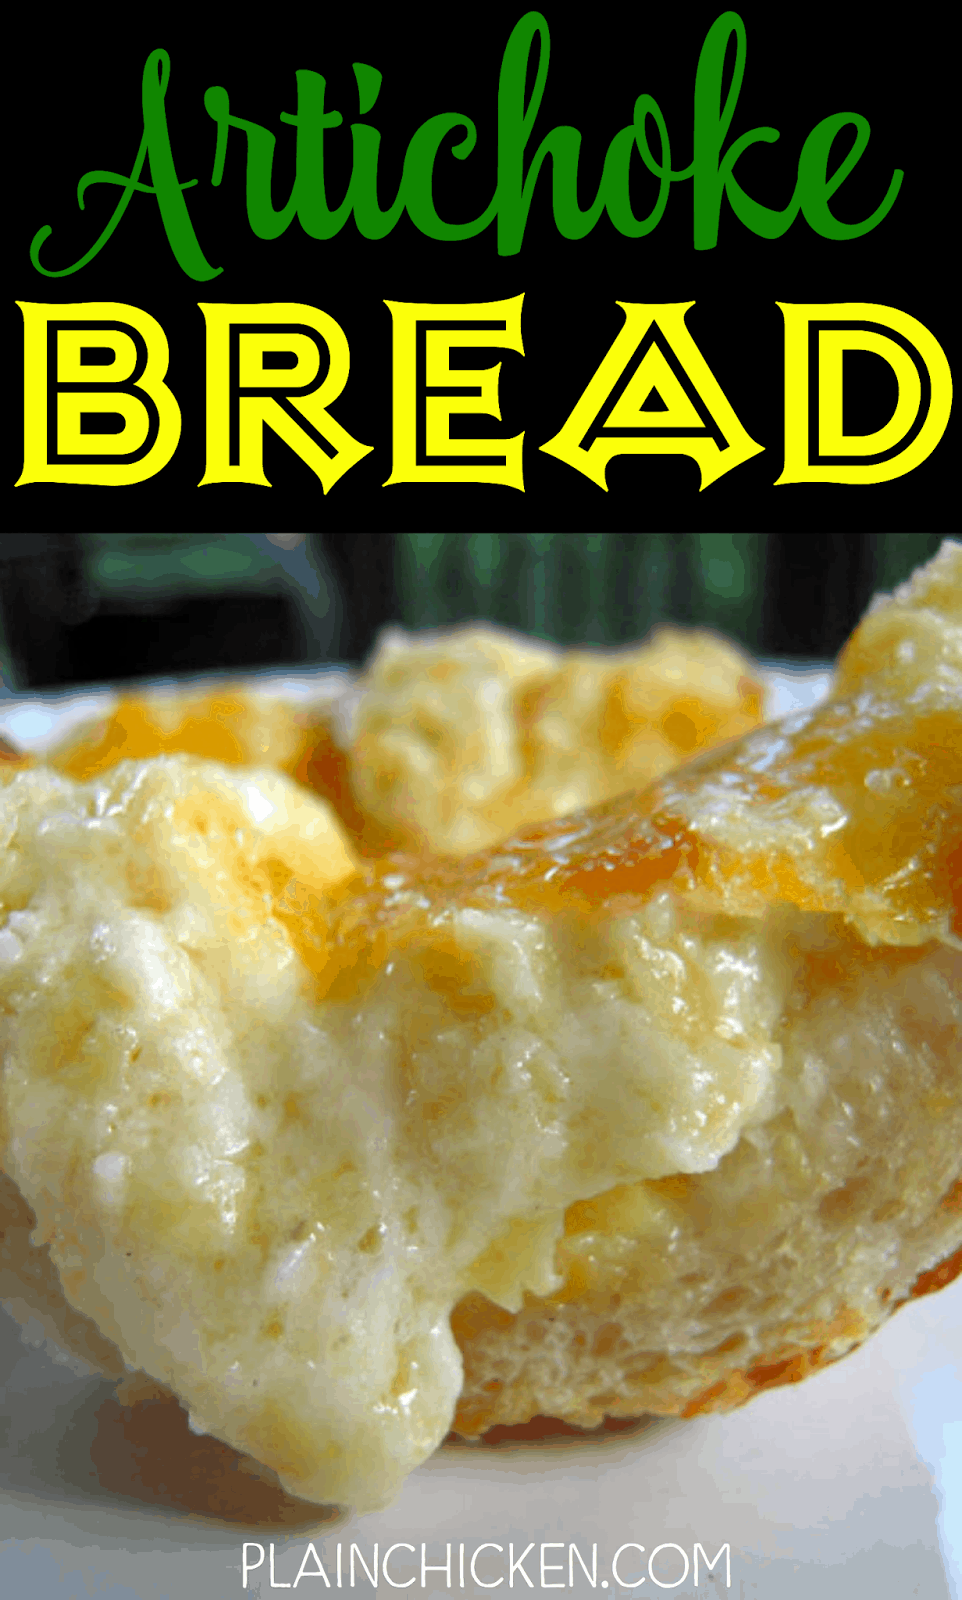 Artichoke Bread - yummy artichoke dip mixture served on top of french bread. This stuff is AMAZING! Butter, garlic, artichokes, mozzarella, parmesan, sour cream, cheddar cheese and french bread. This is always the first thing to go!